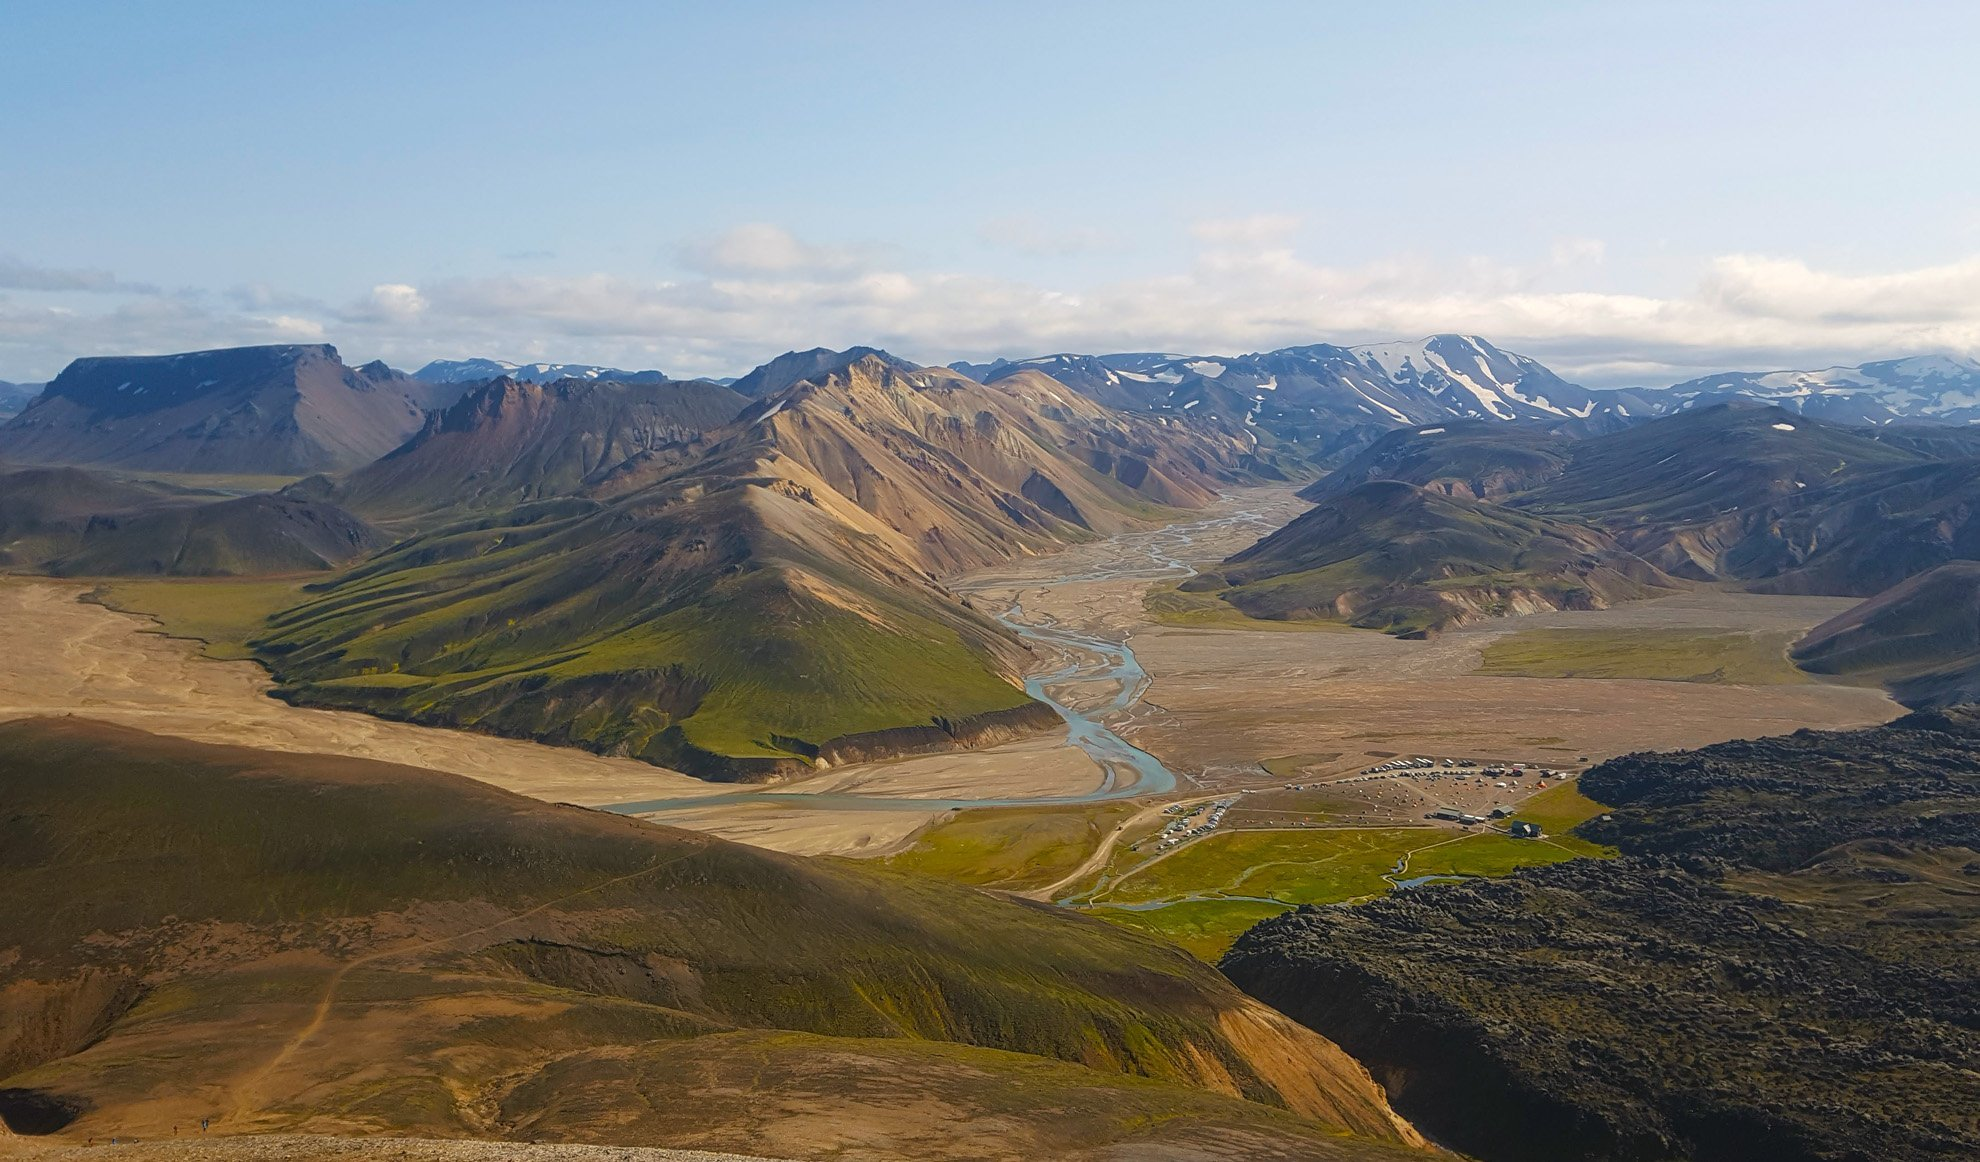 Landmannalaugar camping site viewed from above the mountain